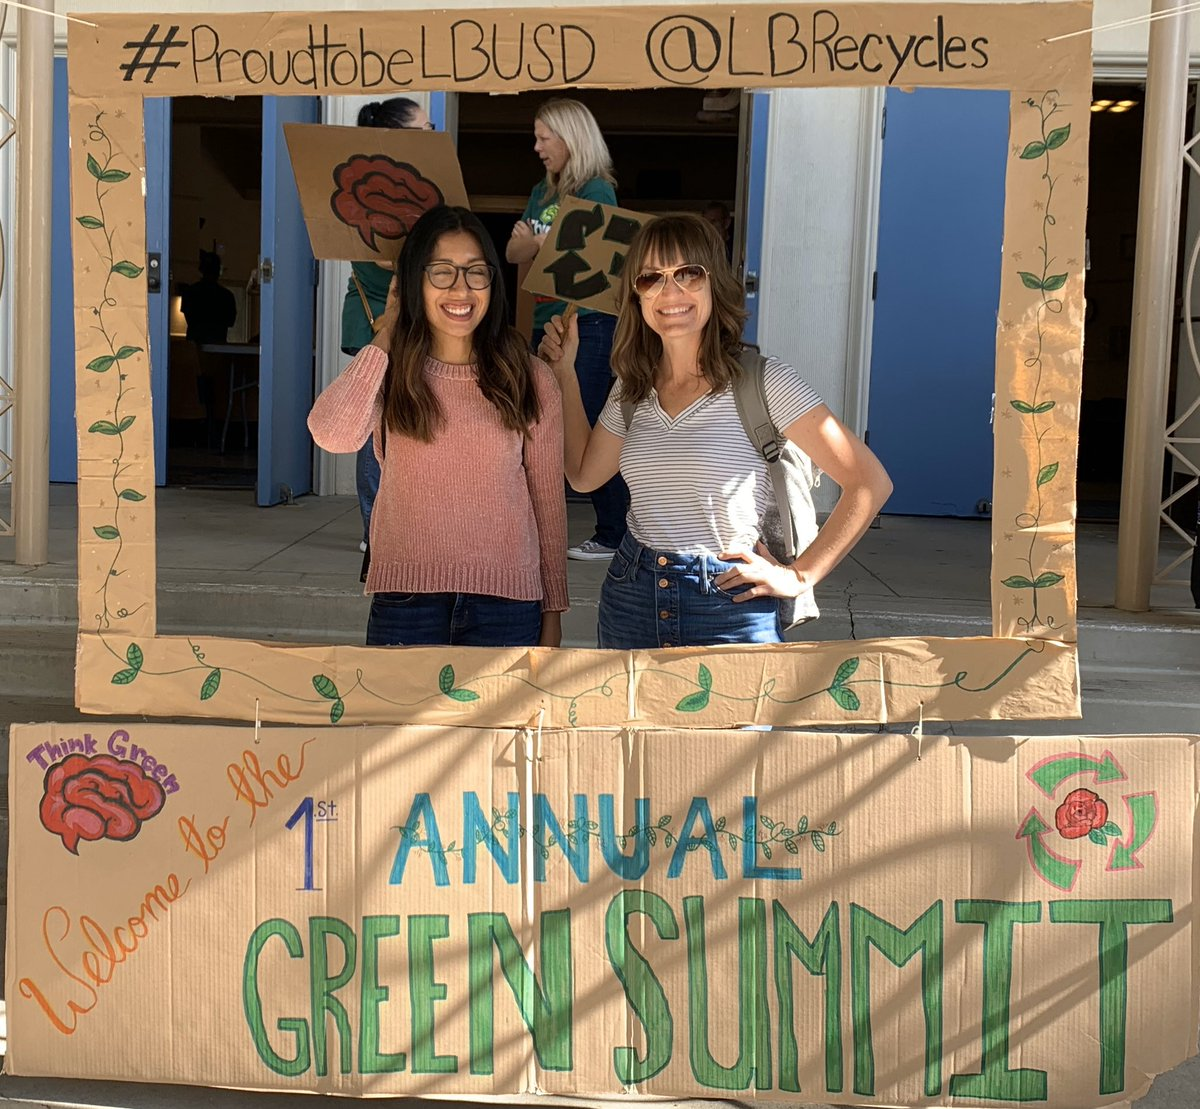 Kudos to everyone that put their time & hearts into making the first LBUSD Green Summit such a wonderful & inspiring event happen! @WhittierLBUSD is proud to #thinkgreen & move toward our Green goals! @AnguianoMs @GradesofGreen @PamelaWeinstein @FoodFindersLBC @BYOLongBeach